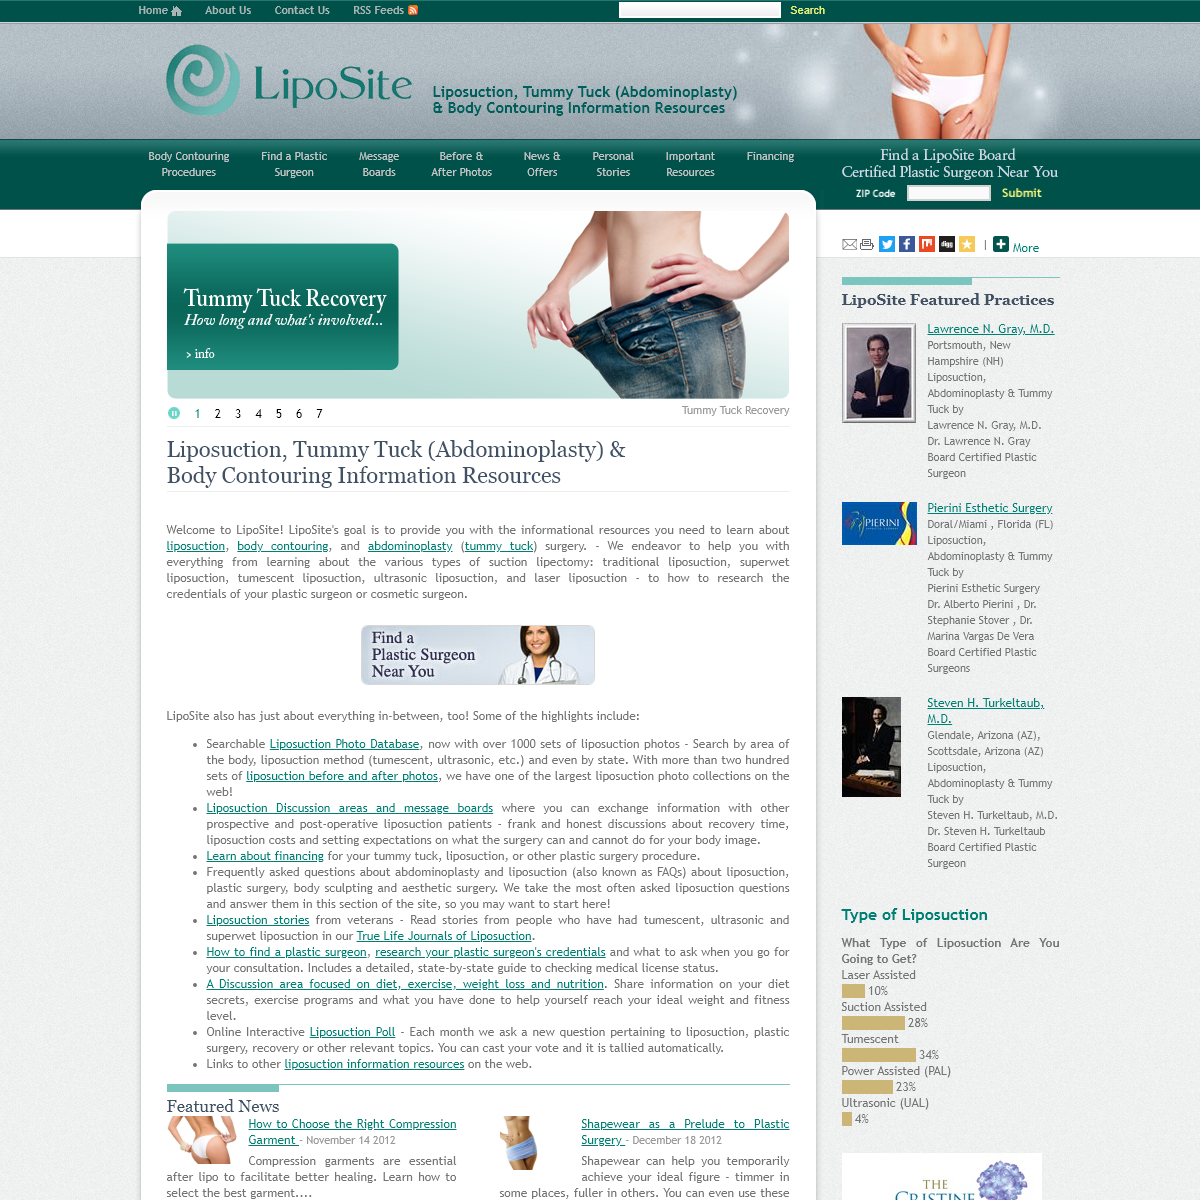 Liposuction, Tummy Tuck (Abdominoplasty) & Body Contouring Information Resources - LipoSite